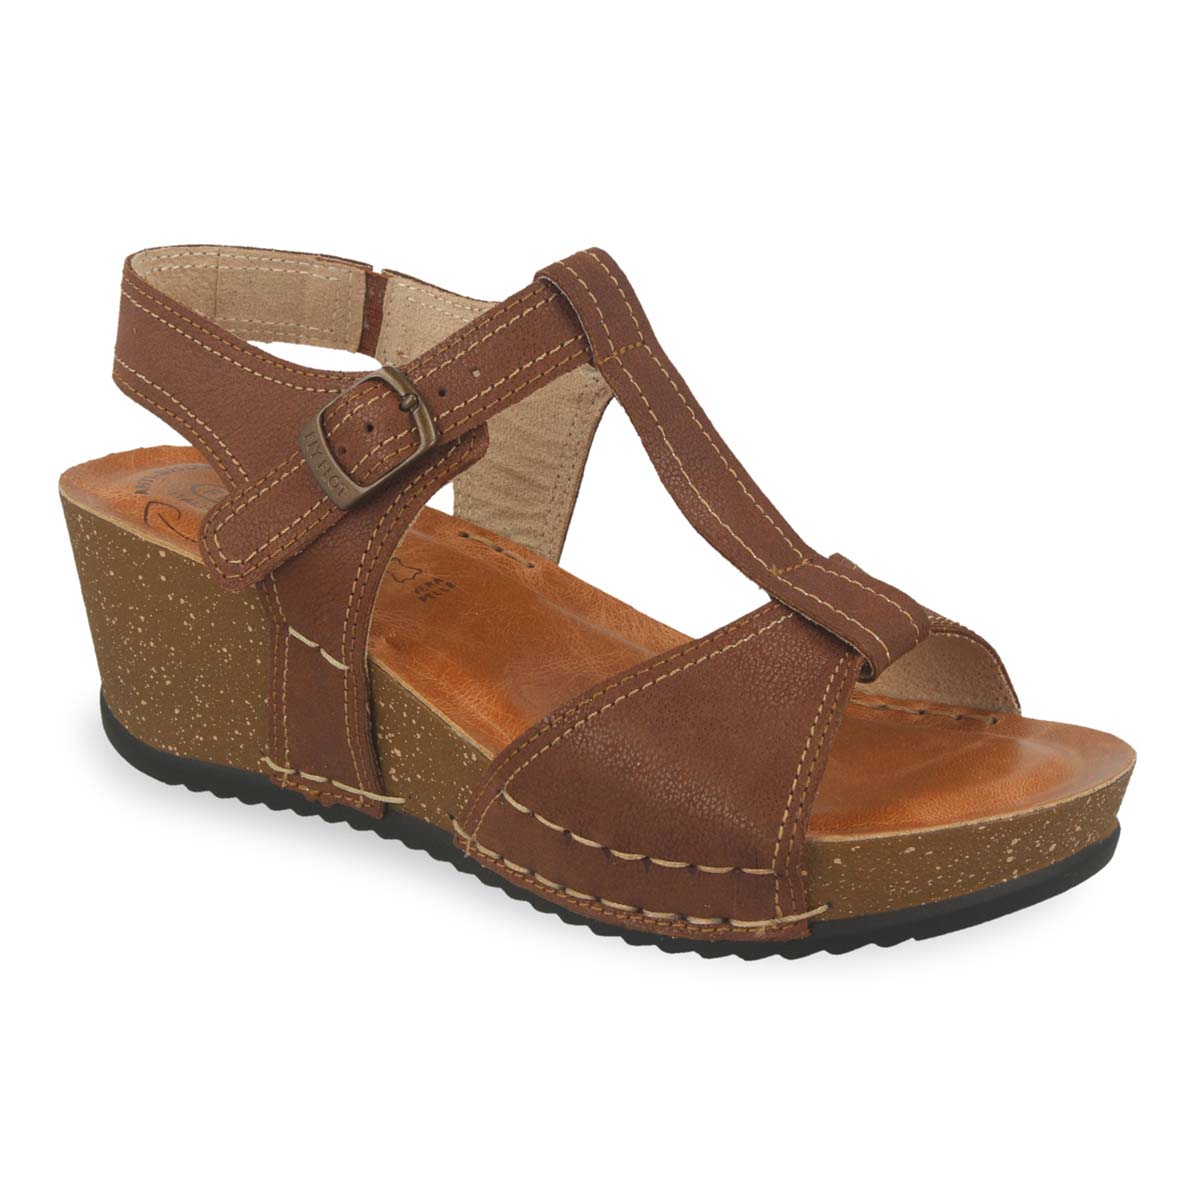 Photo of the Leather Woman Sandal Brown (33e43bg)